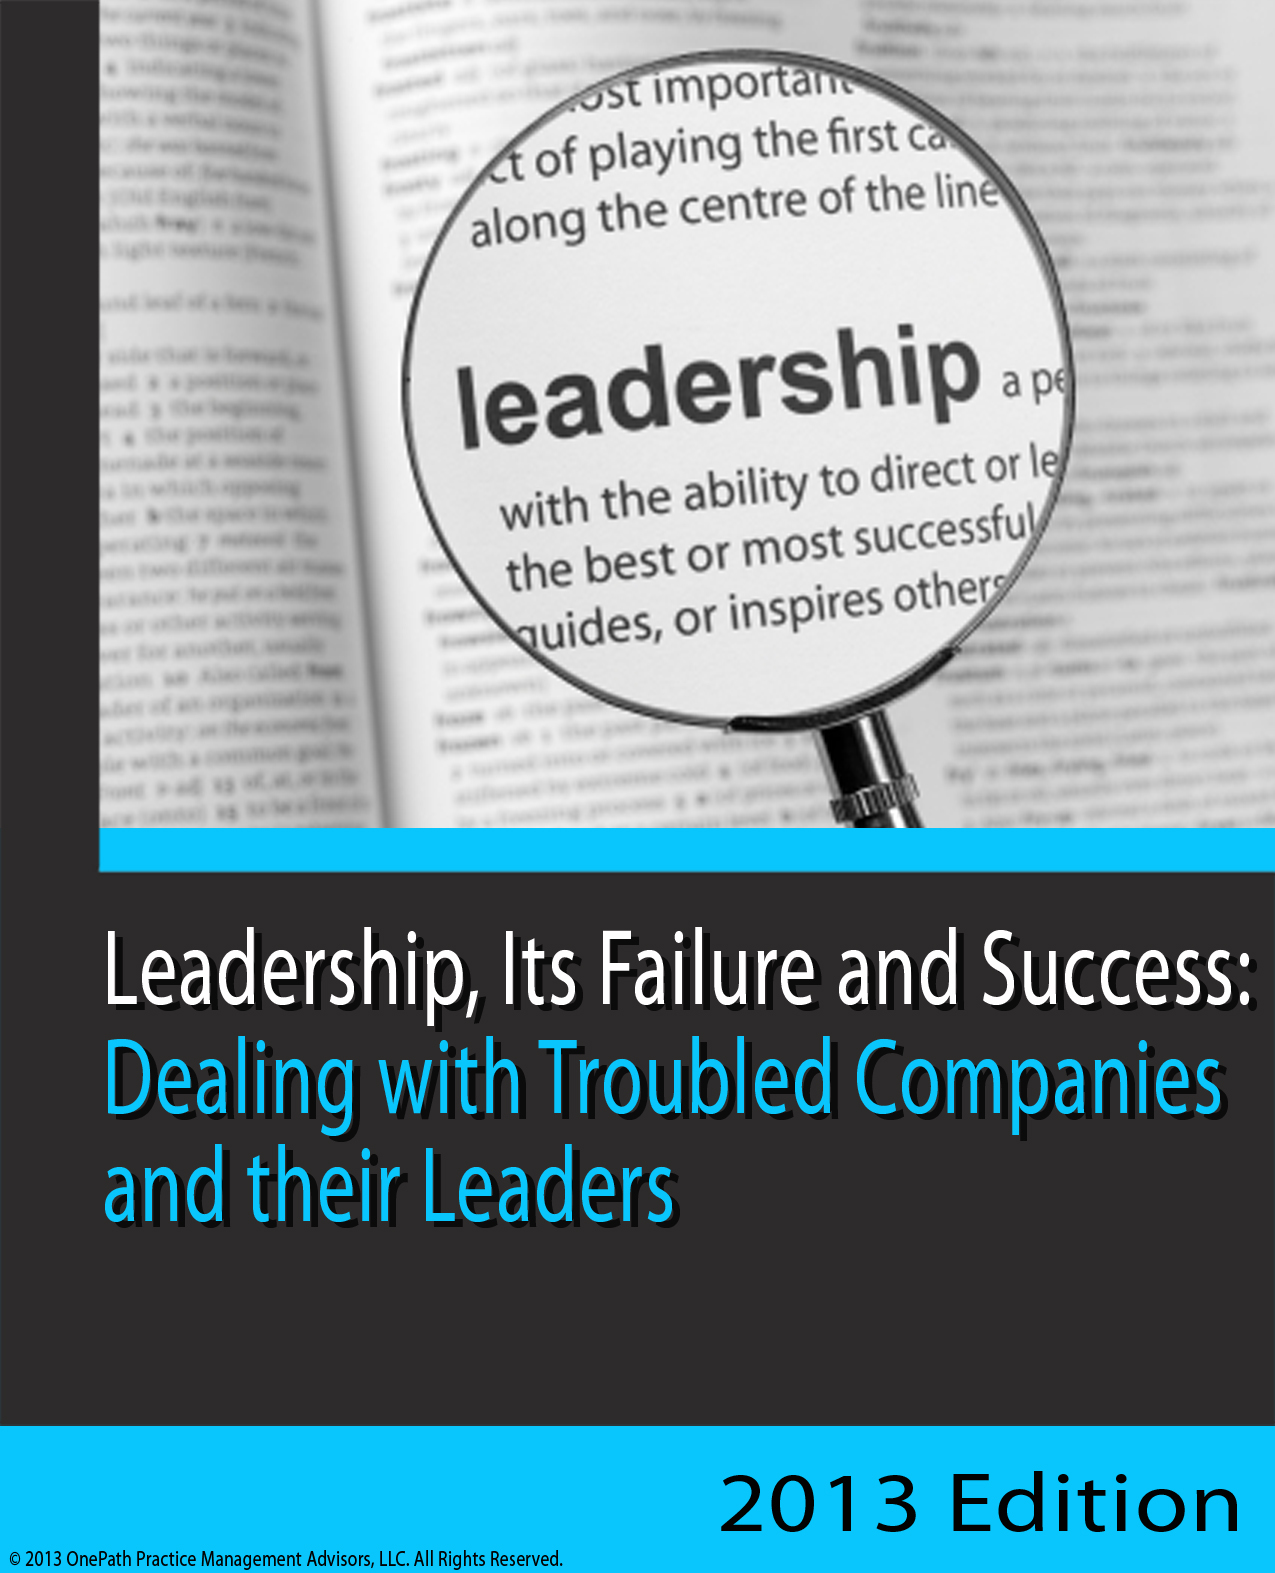 Leadership - the difference between success and failure